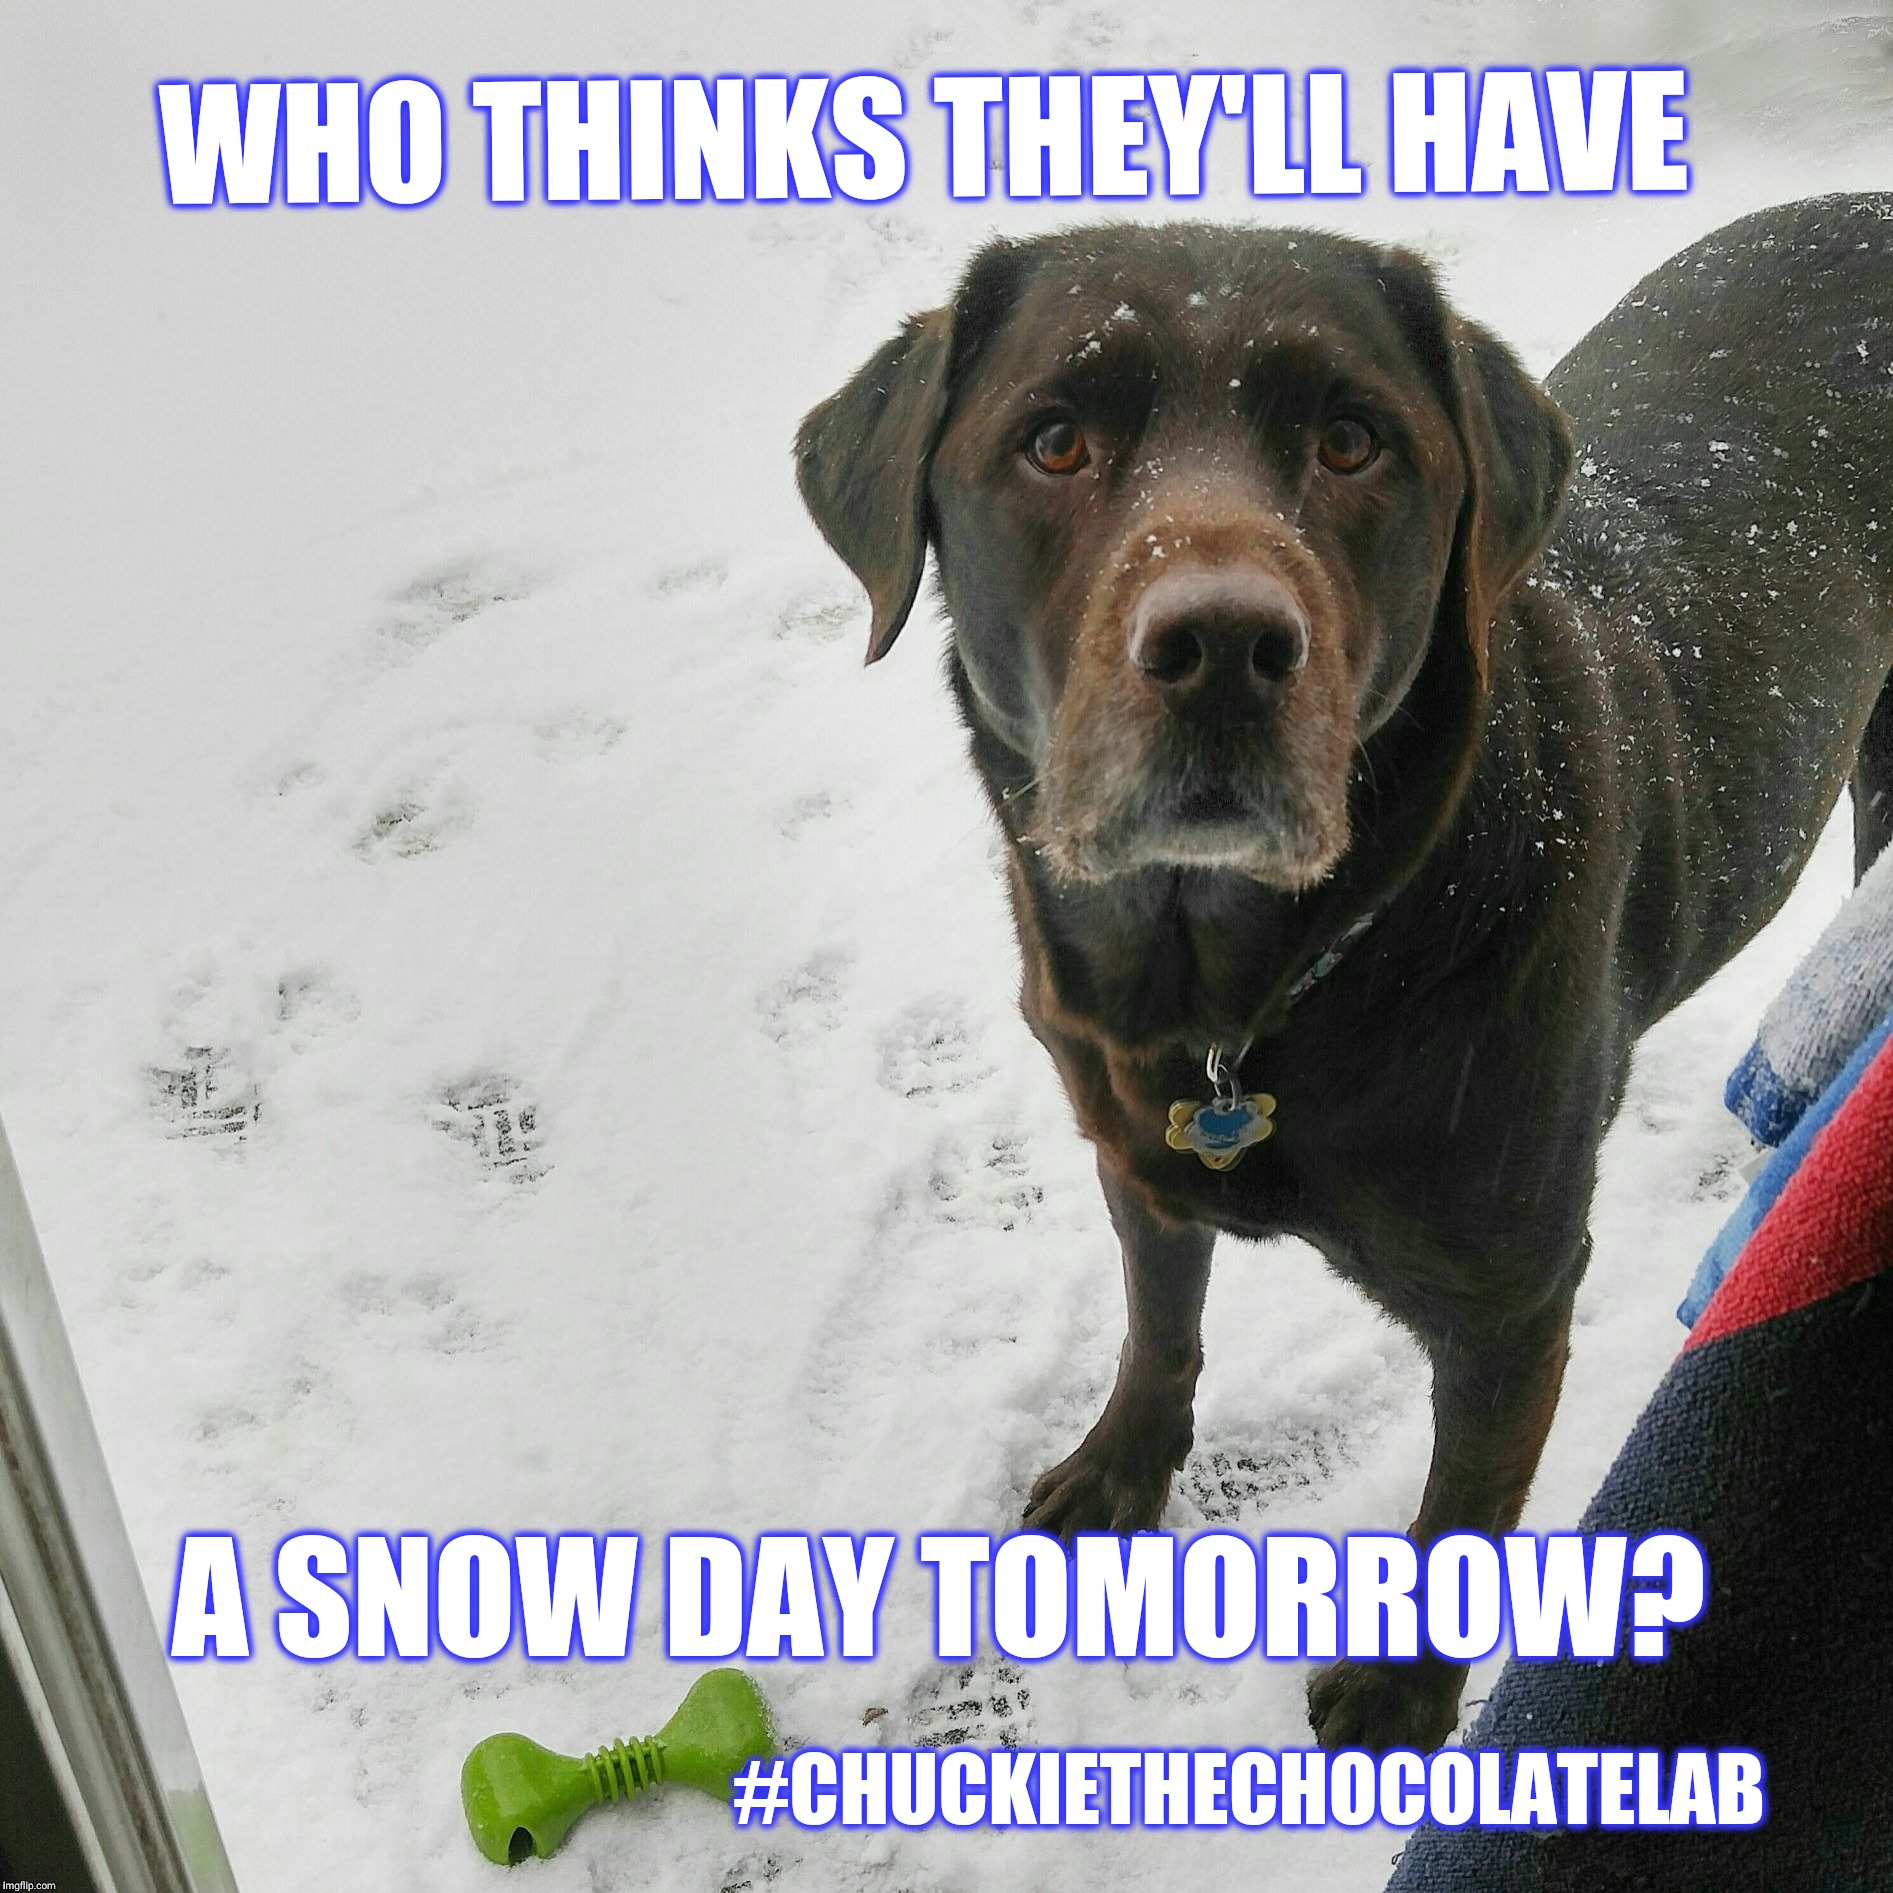 Who thinks they'll have a snow day tomorrow?  | WHO THINKS THEY'LL HAVE #CHUCKIETHECHOCOLATELAB A SNOW DAY TOMORROW? | image tagged in chuckie the chocolate lab teamchuckie,snow,snow day,dogs,memes,cute | made w/ Imgflip meme maker